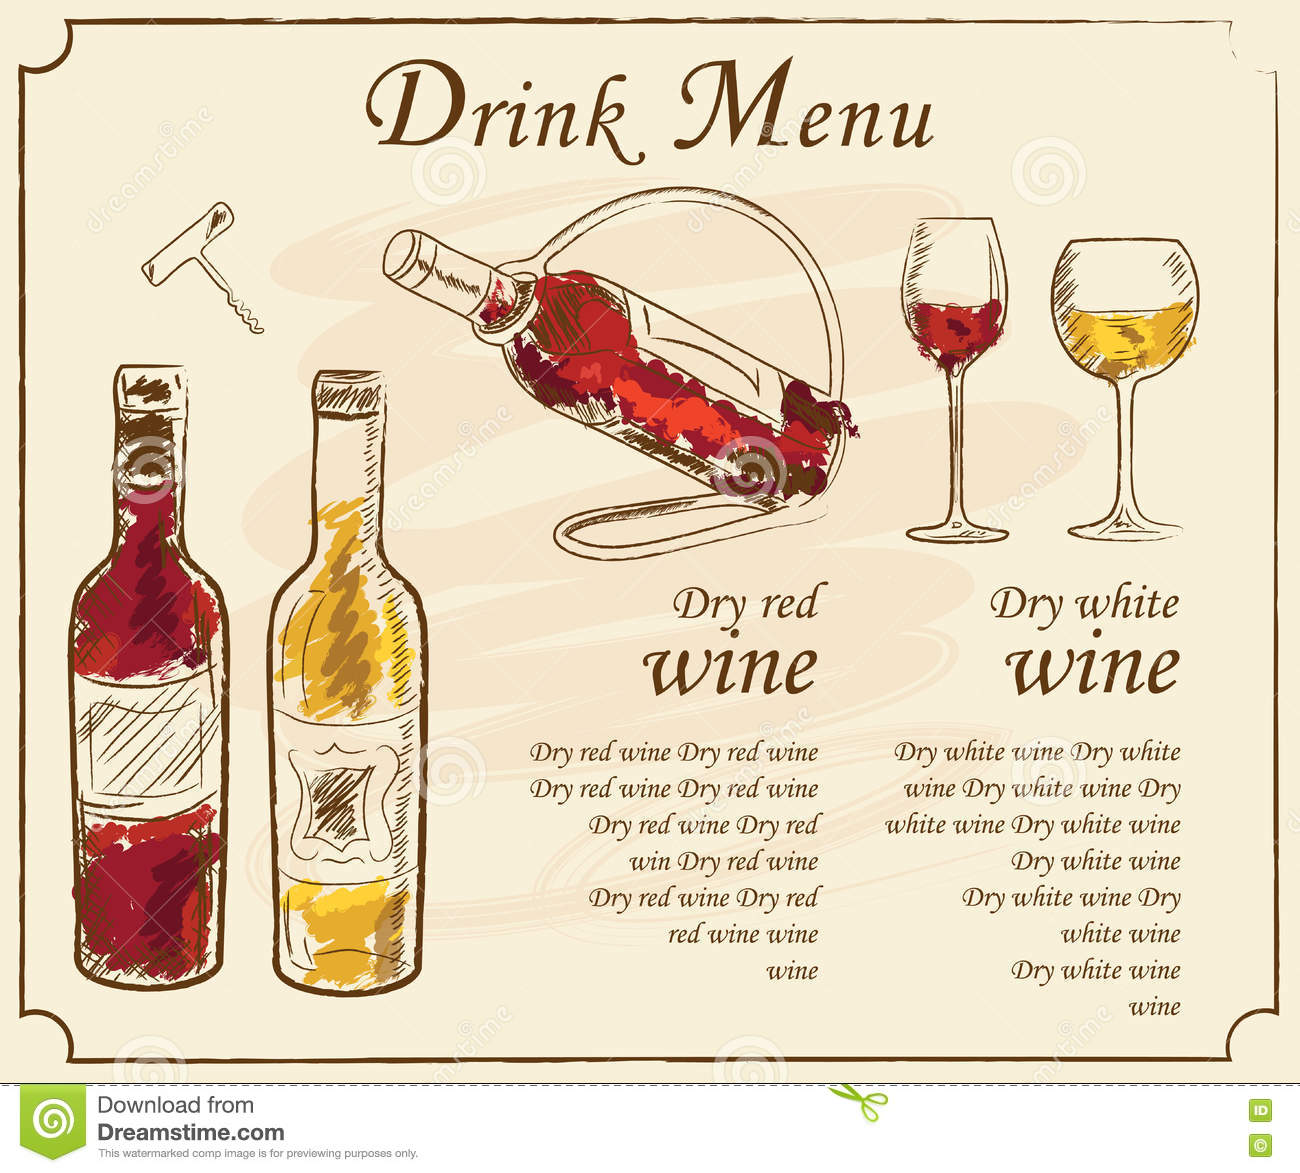 Drink Menu Elements